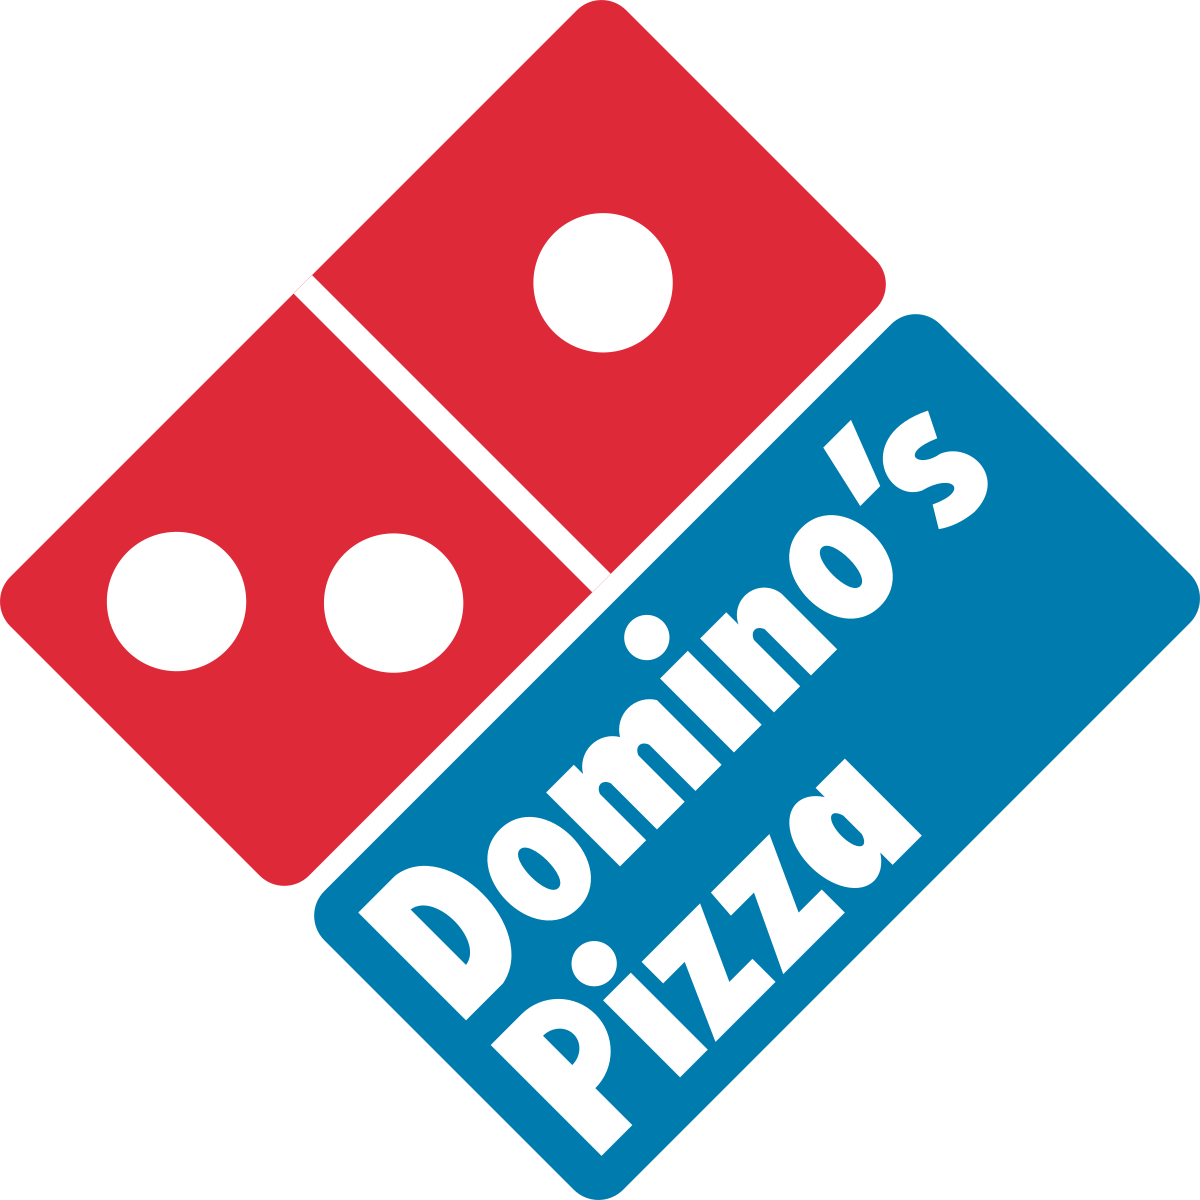 Dominos Latest Promo Codes March 2020 | New Promo Codes Added